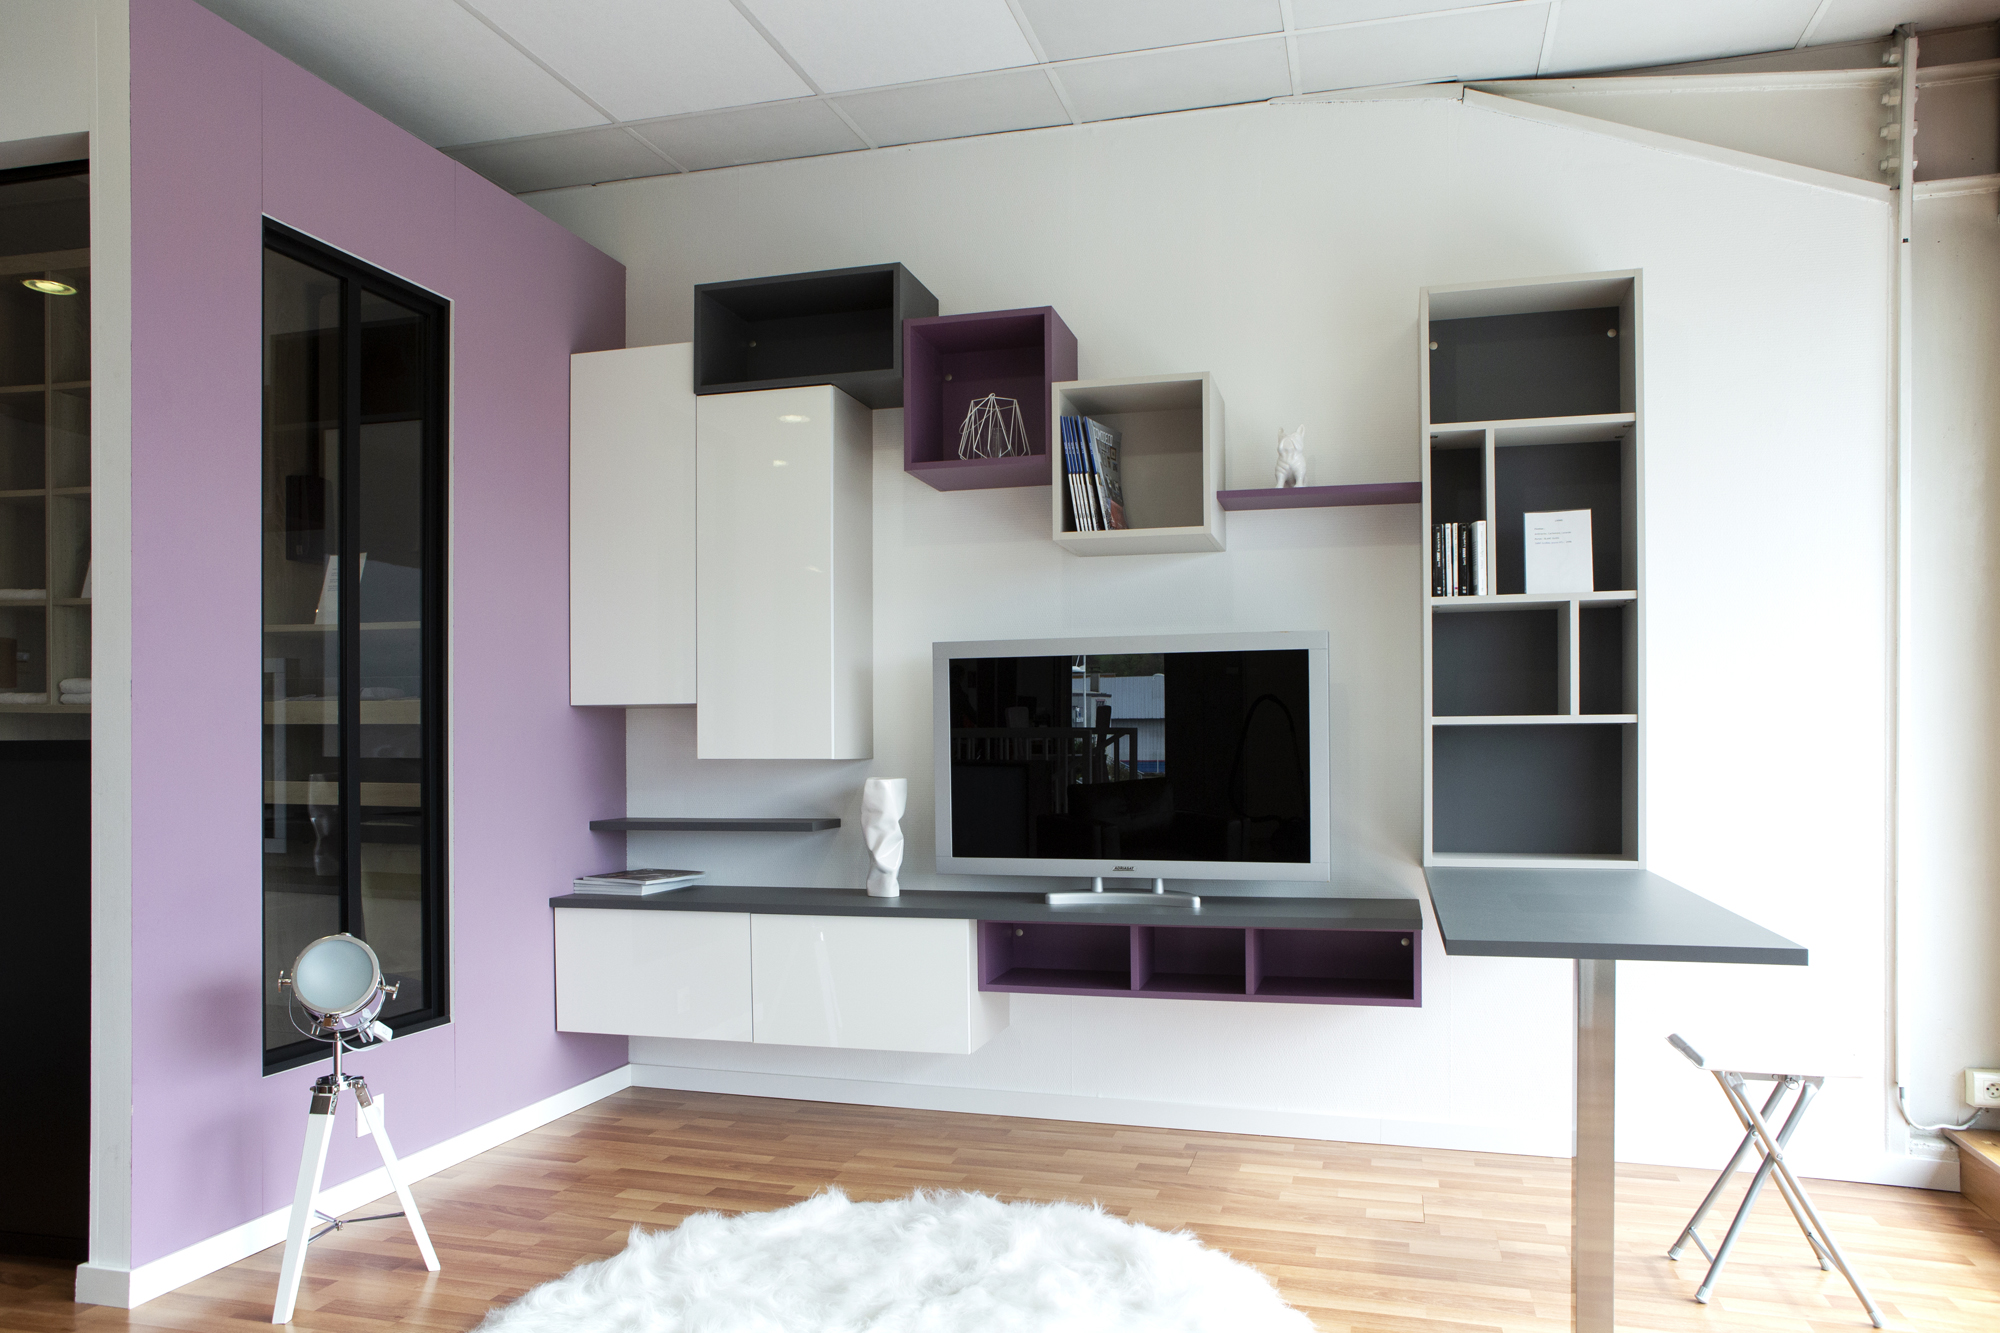 Conception Et Pose D Amenagement Interieur Sur Mesure